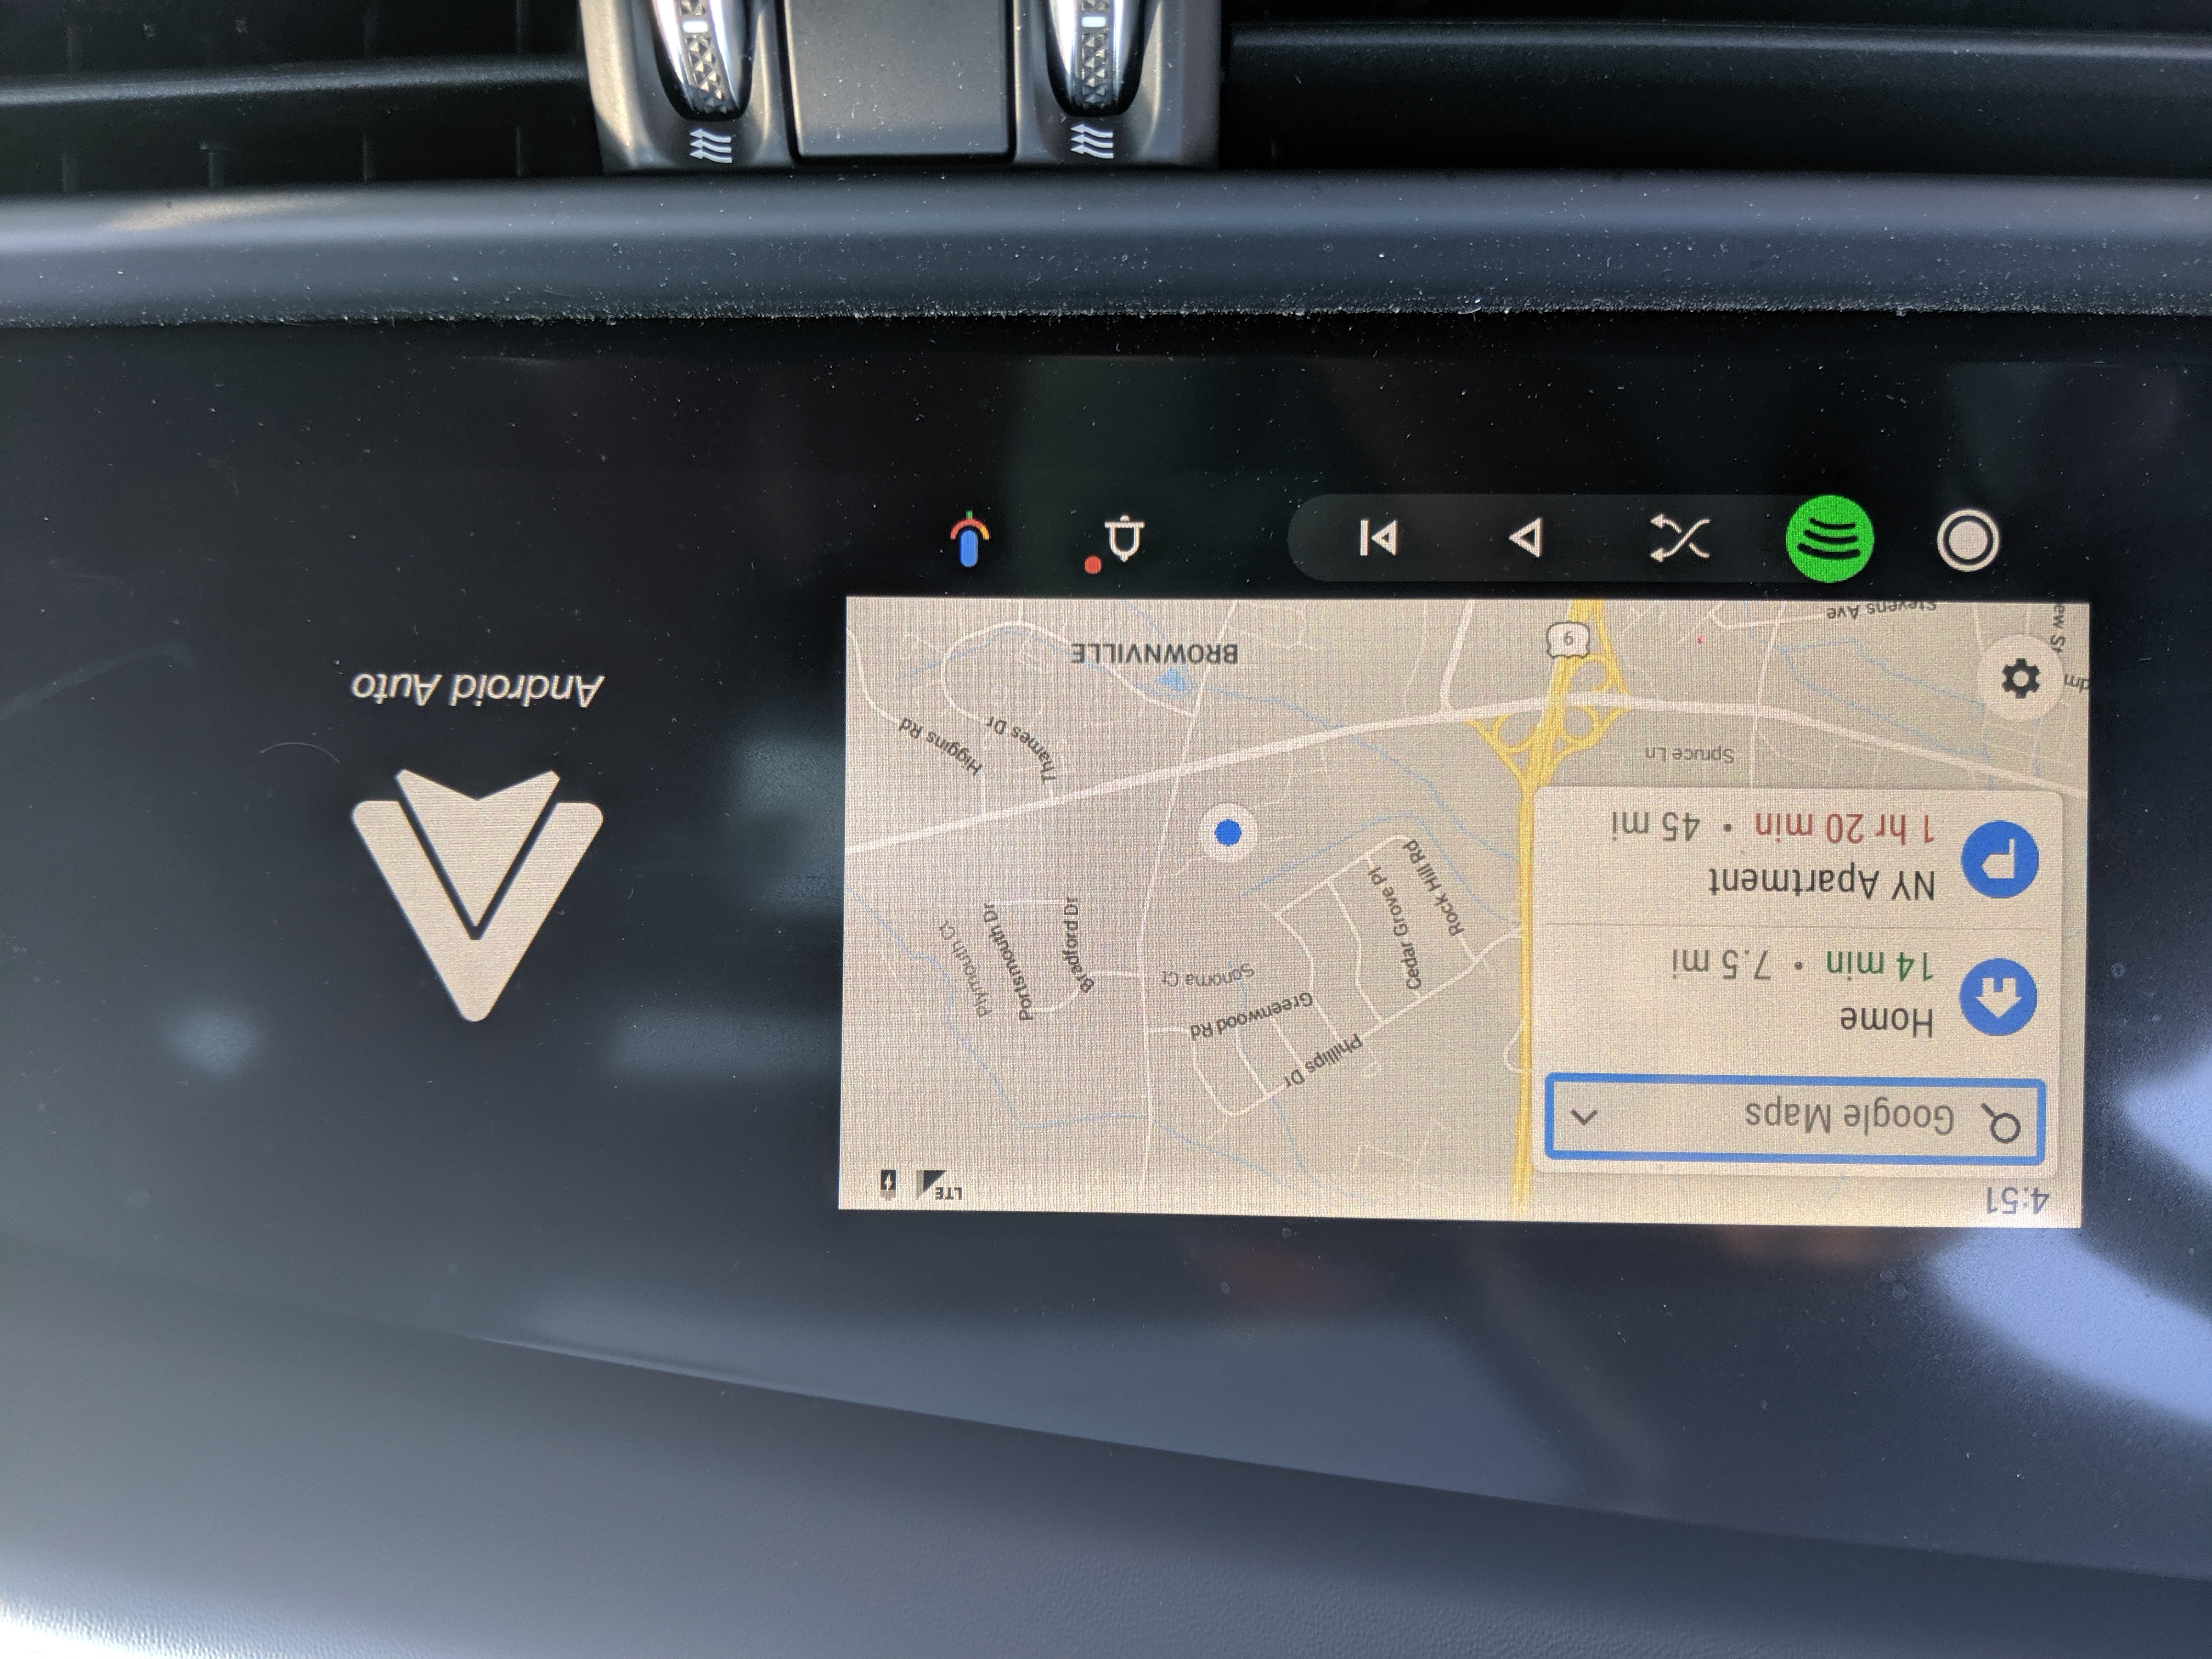 D And A Auto >> Android Auto Update Cut Off Screen Display Android Auto Help